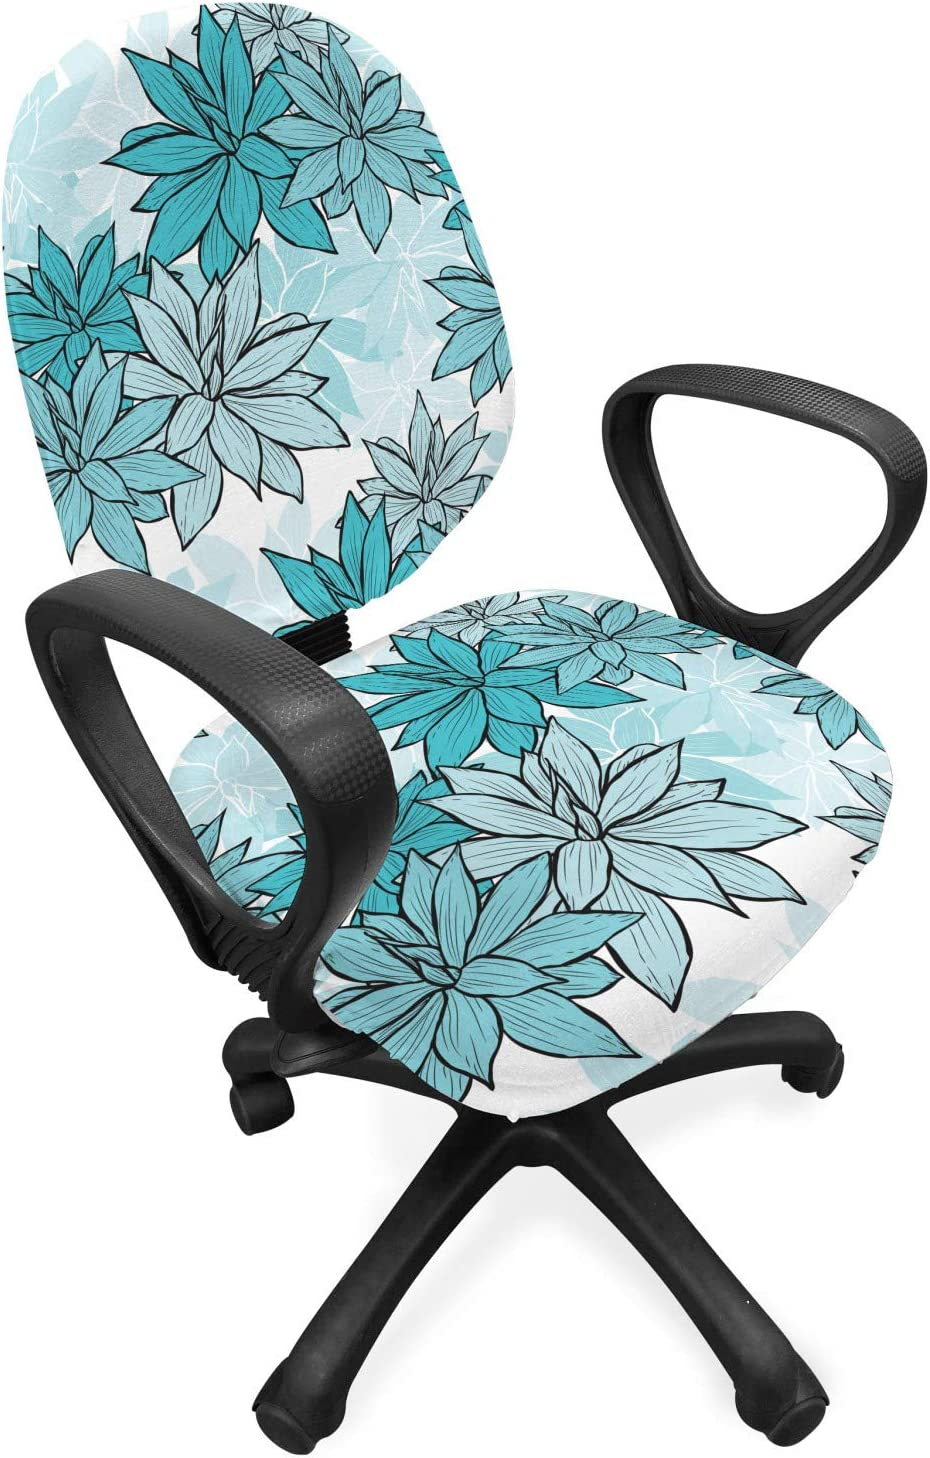 Lunarable Turquoise Office Chair Slipcover, Continuous Hand Drawn Floral Succulents Illustration, Protective Stretch Decorative Fabric Cover, Standard Size, Blue Sky